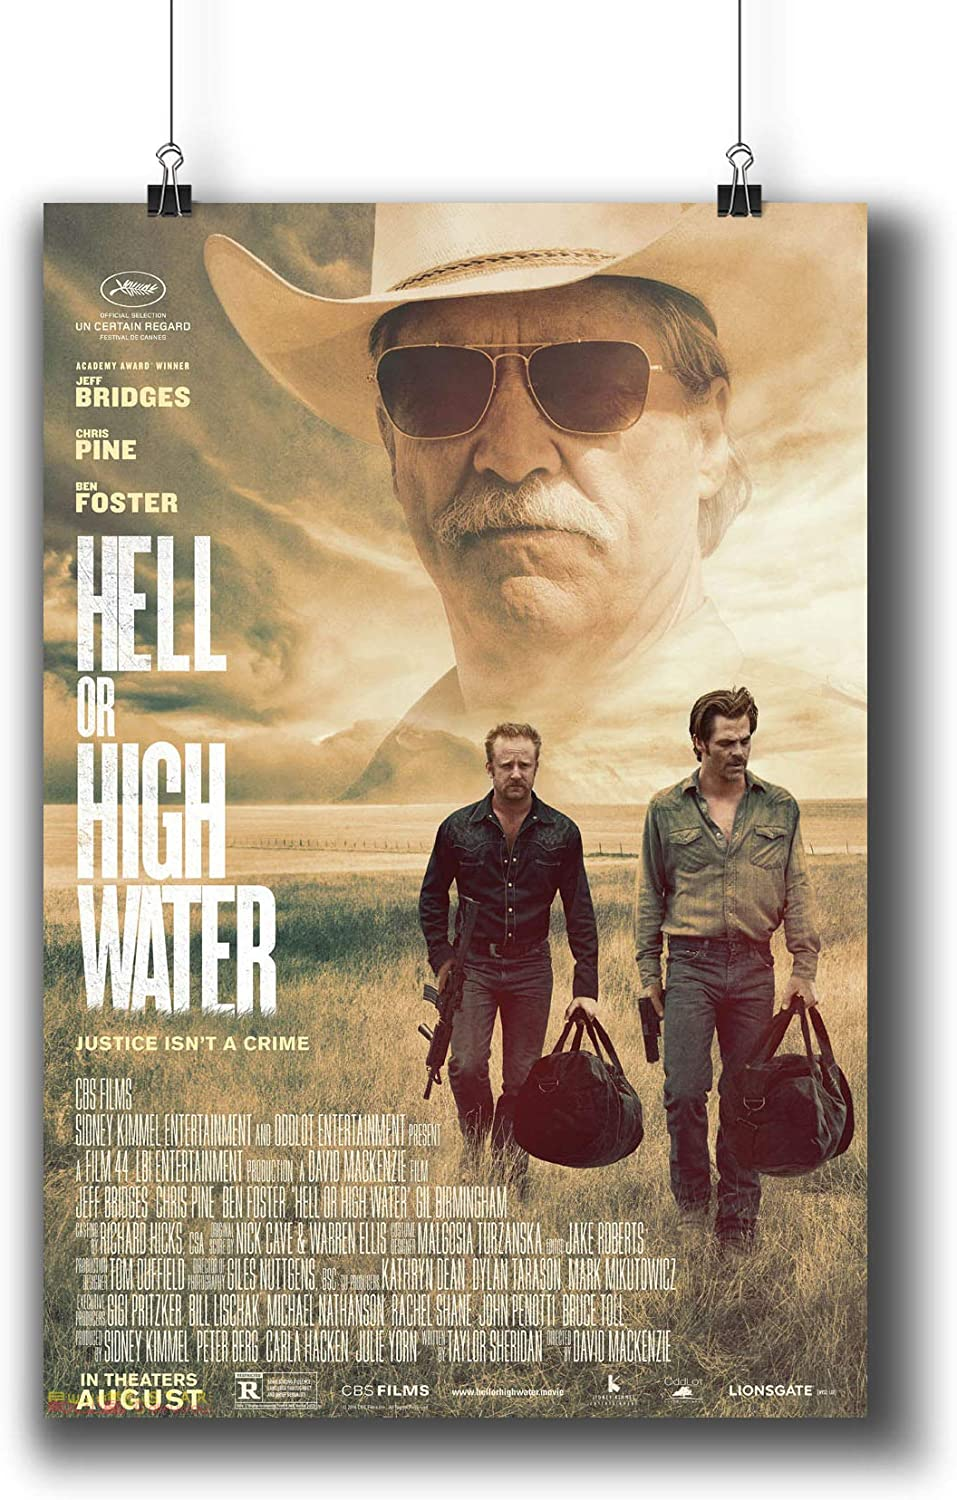 Hell or High Water (2016) Movie Poster Small Prints 834-001,Wall Art Decor for Dorm Bedroom Living Room (A3|11x17inch|29x42cm)